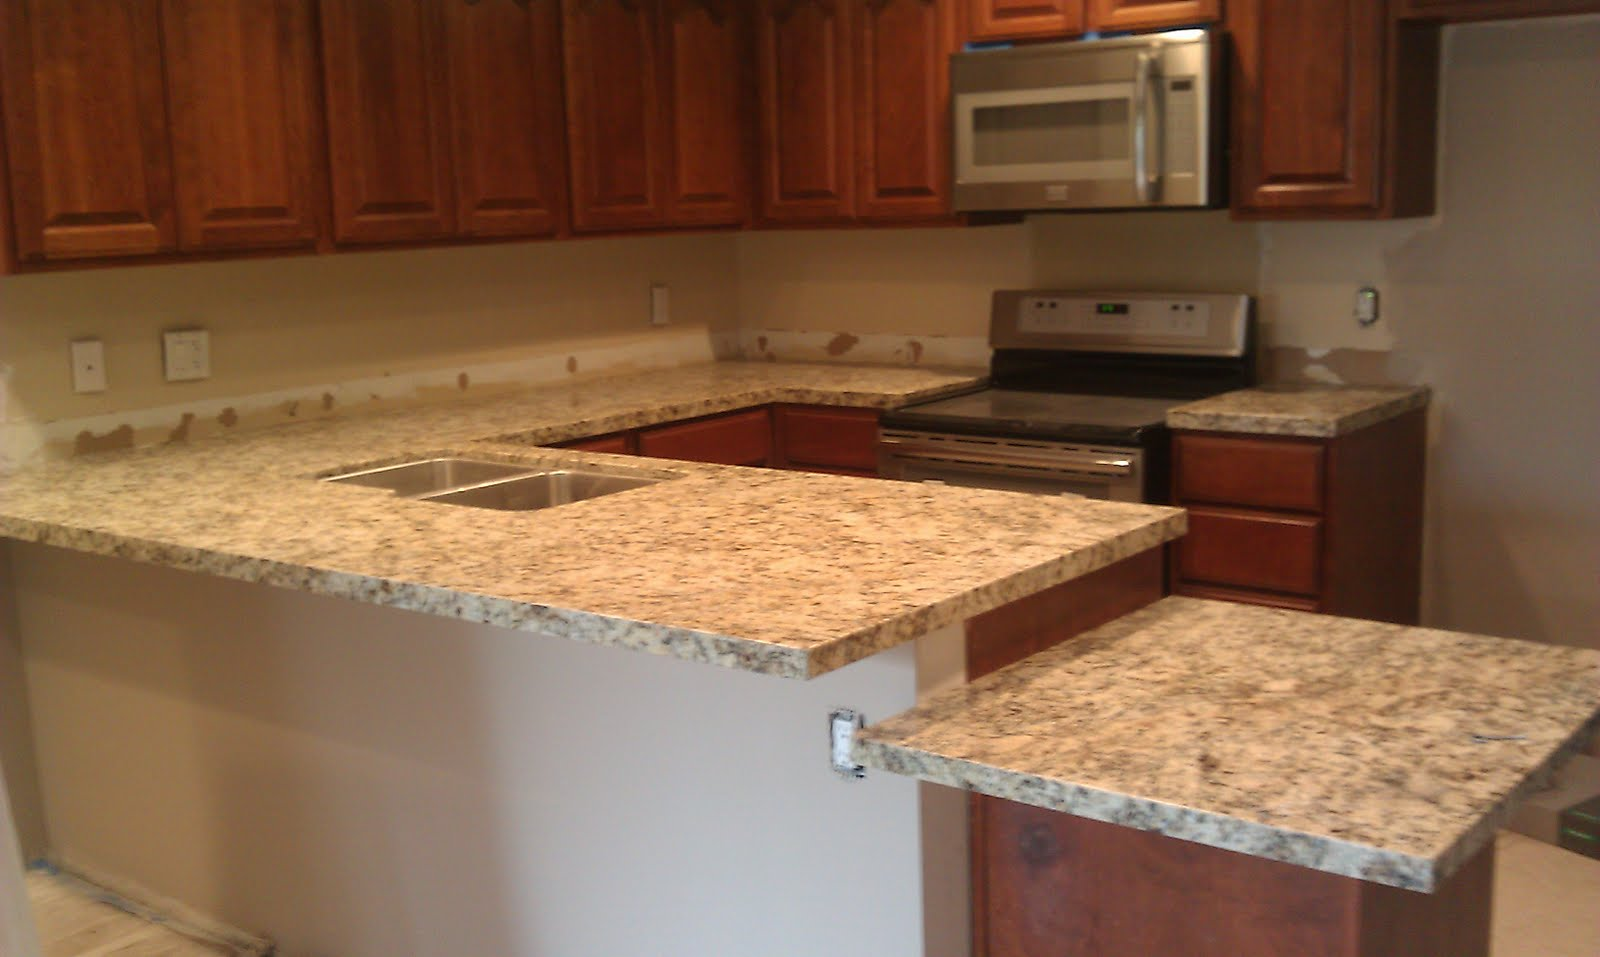 Corian Countertop Price | Vanity Tops at Home Depot | Home Depot Countertop Estimator